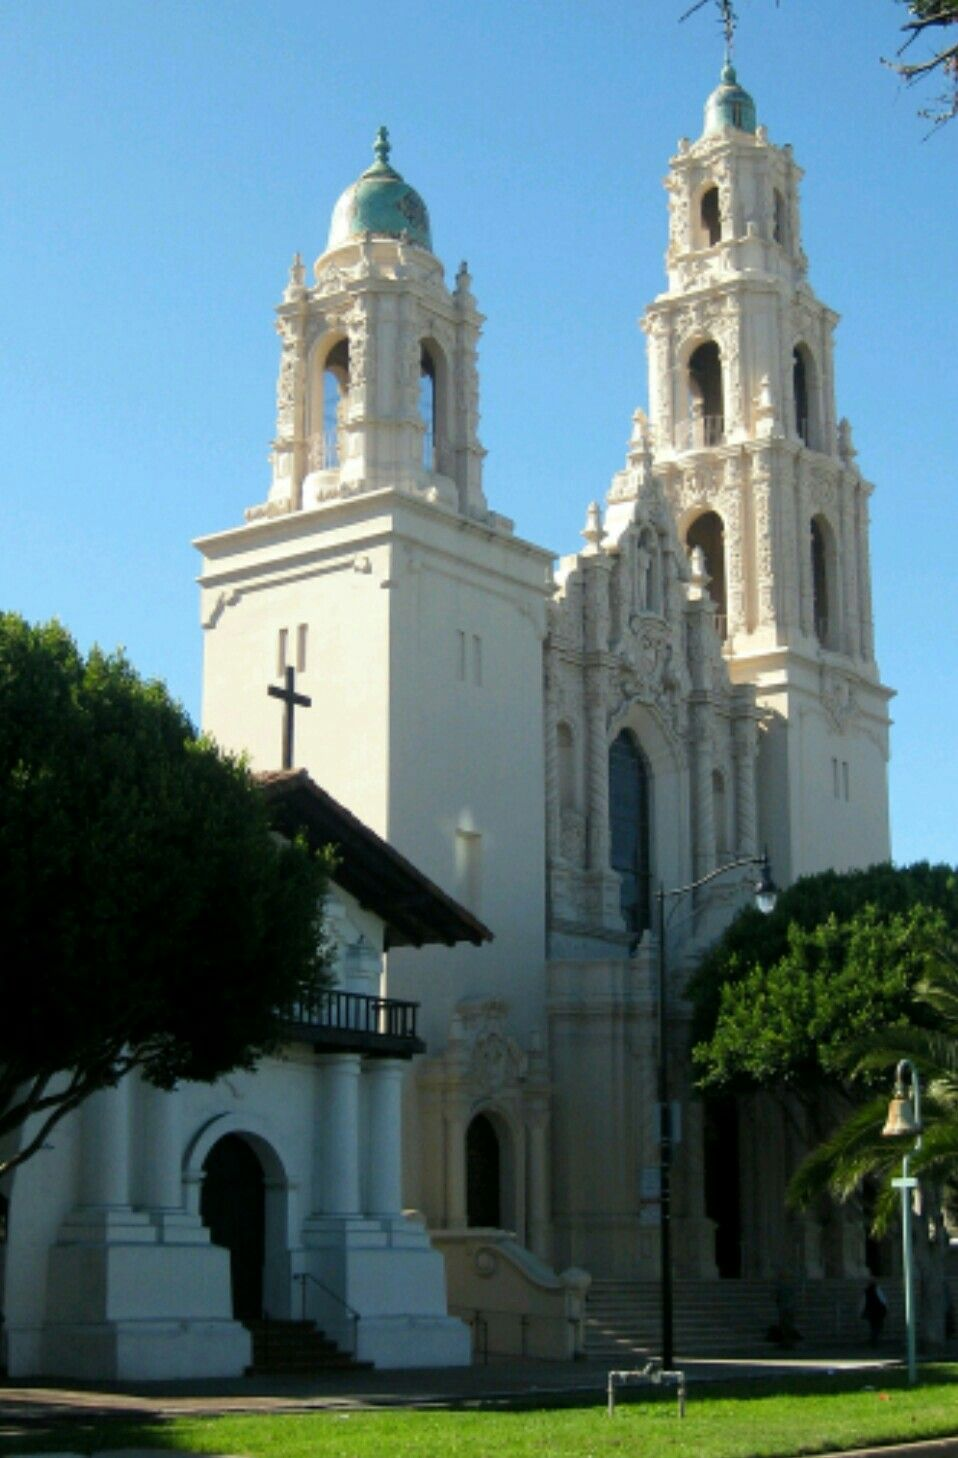 mission dolores california missions in 2019 california missions rh pinterest com